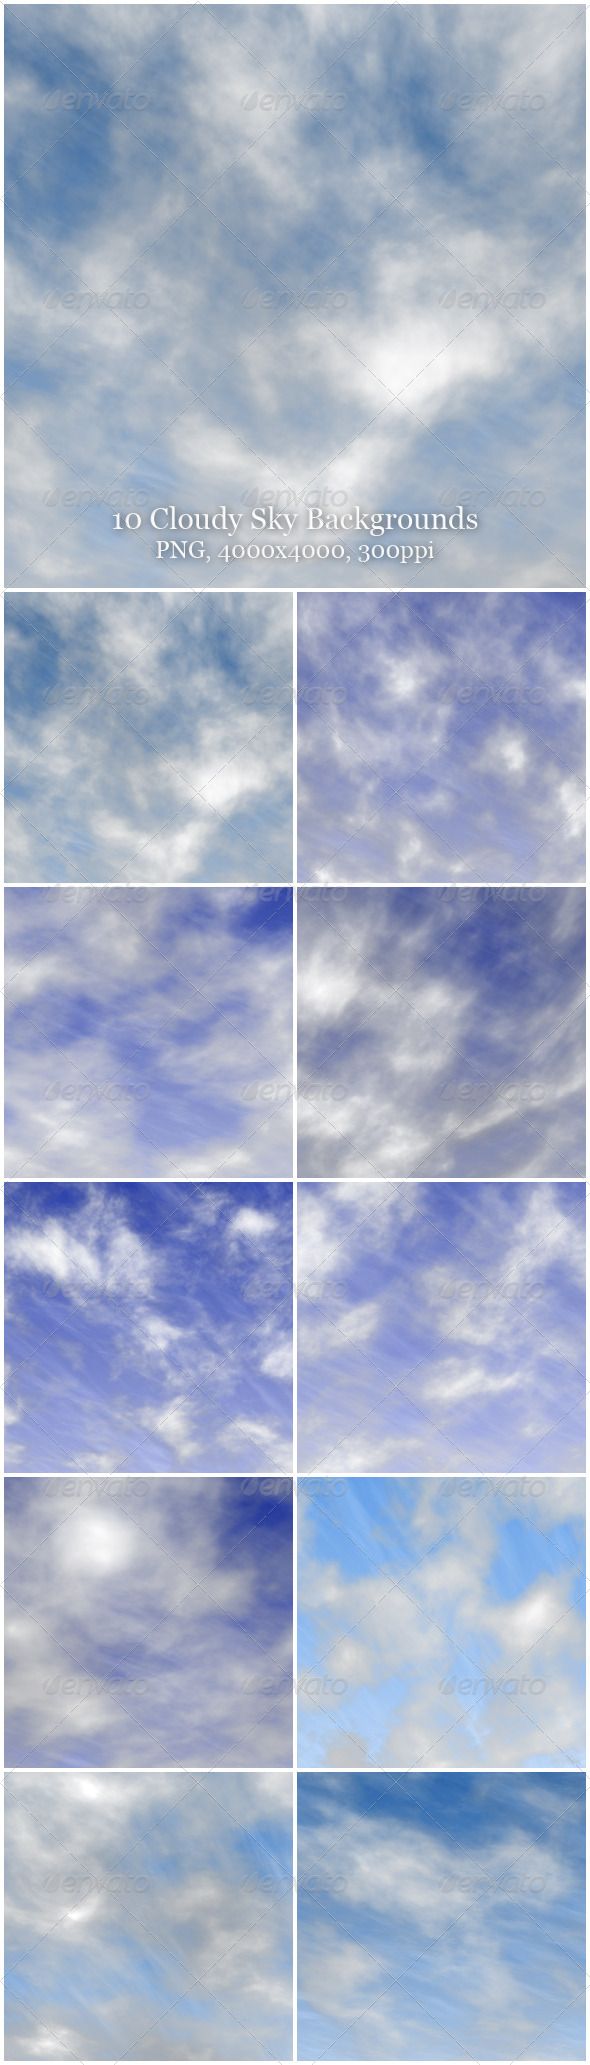 GraphicRiver 10 Cloudy Sky Backgrounds 6251612